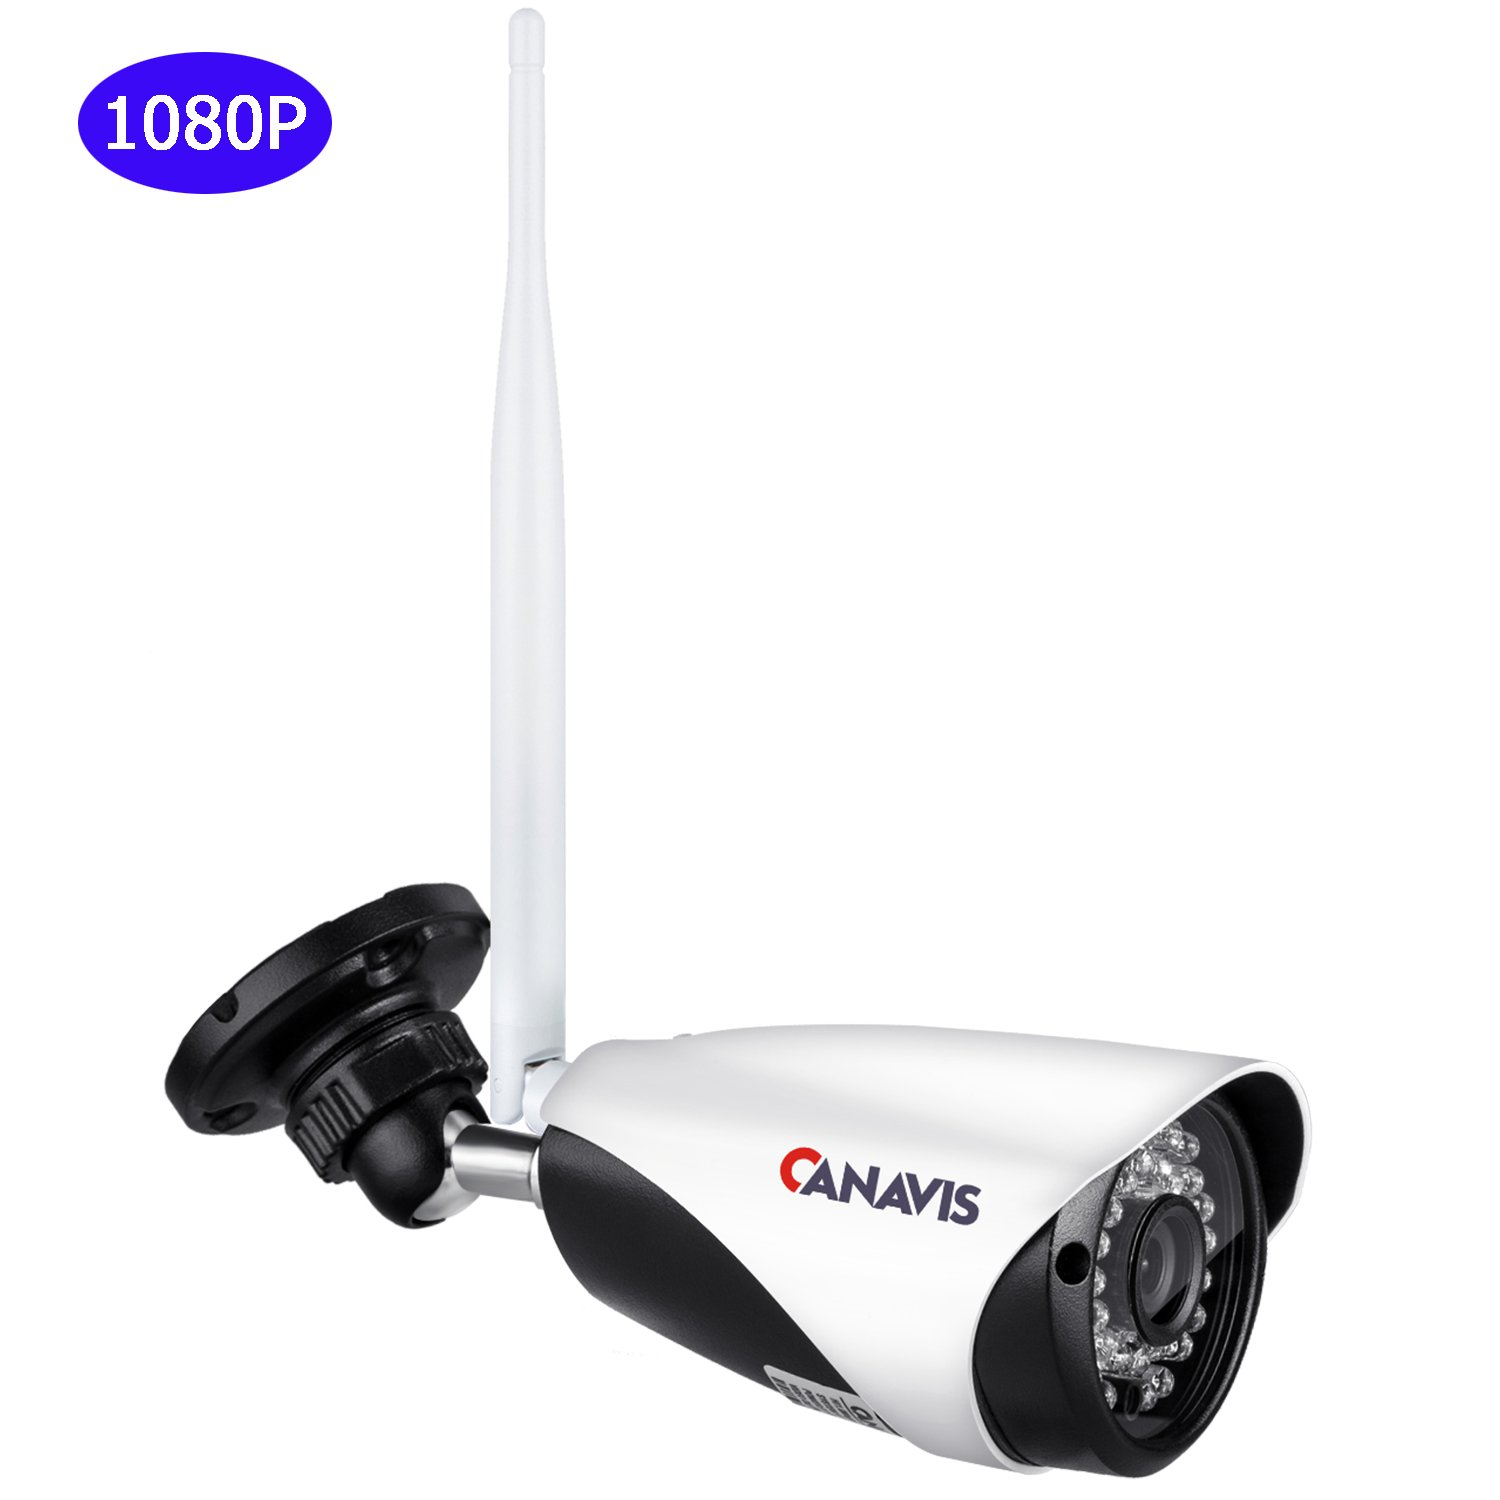 CANAVIS 1080P 2.0MP Megapixel Wifi Wireless Bullet Camera with IR Cut 3.6mm Lens 65ft Night Vision for Home Security CCTV Camera System